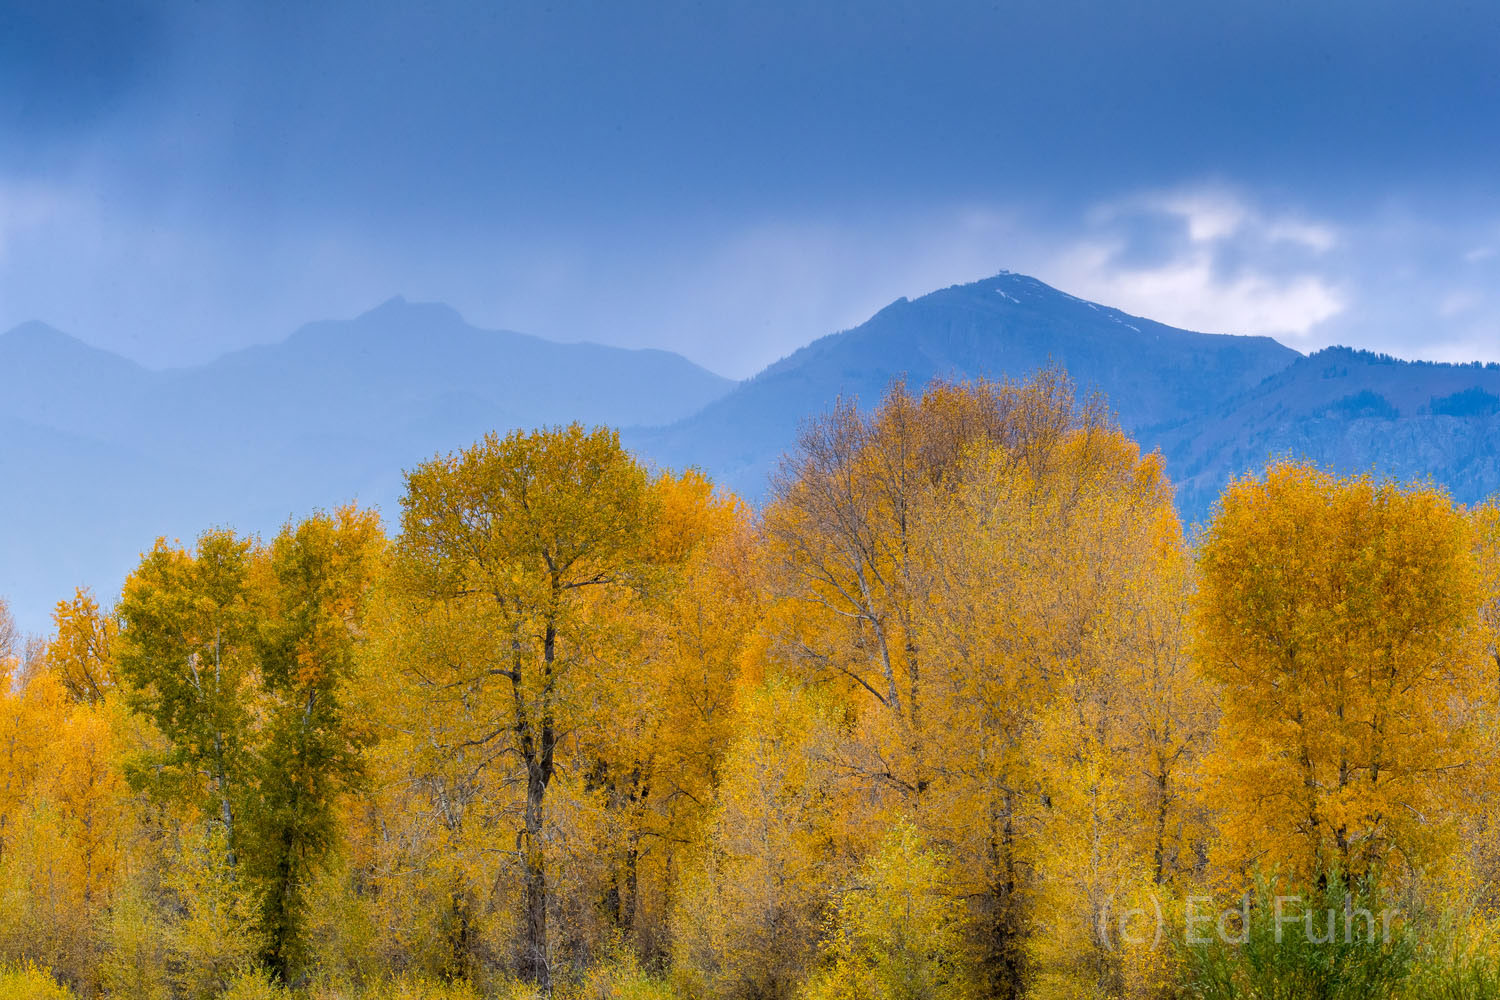 Autumn has arrived and the aspen below the Tetons are now a day away from their peak color.